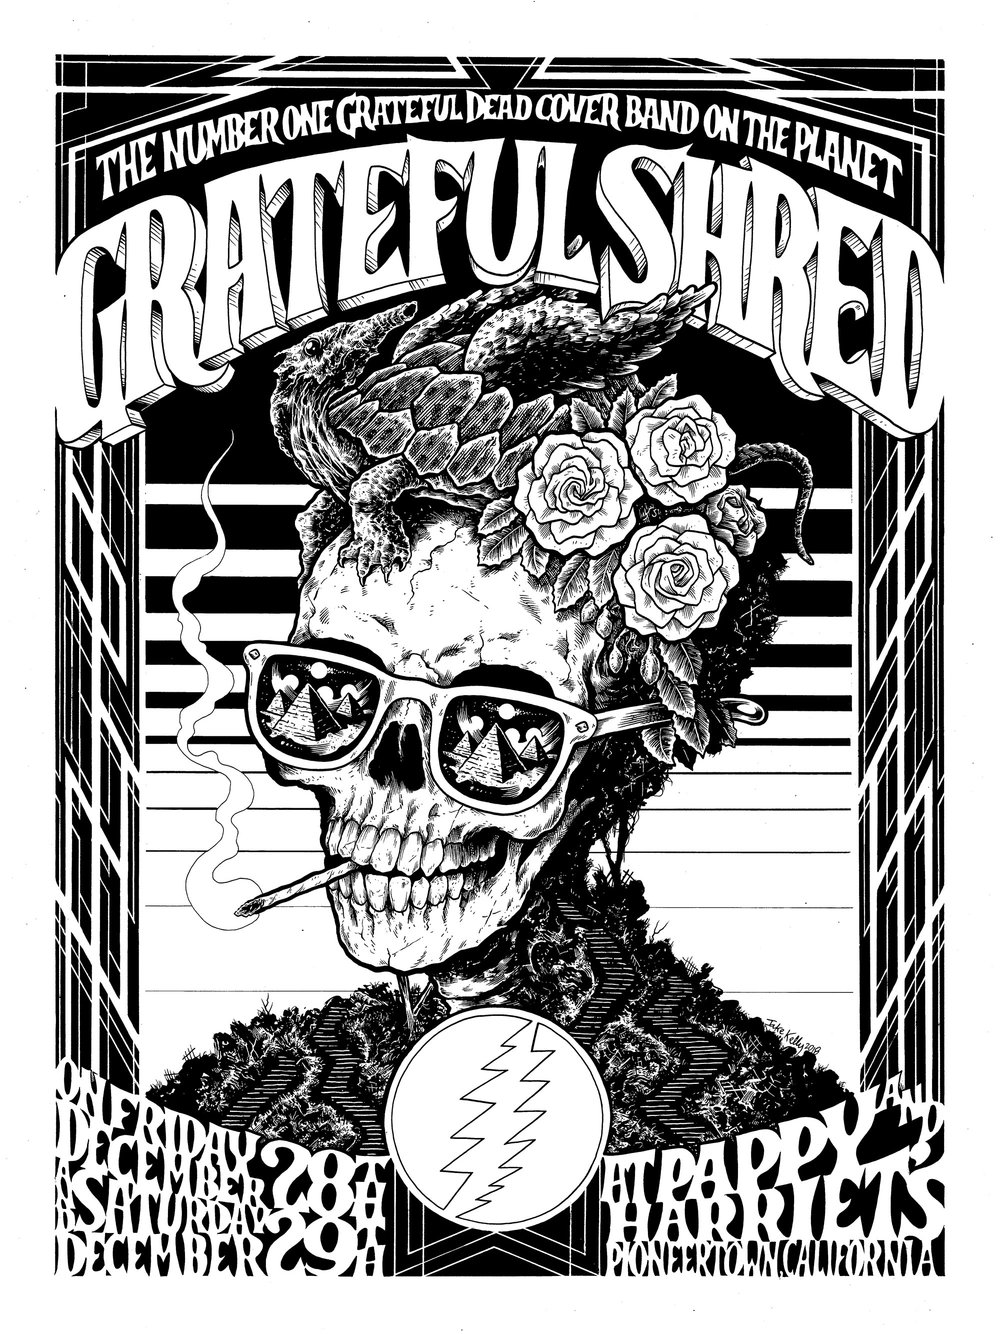 Grateful Shred Pappys 12.28.18. Web.jpg